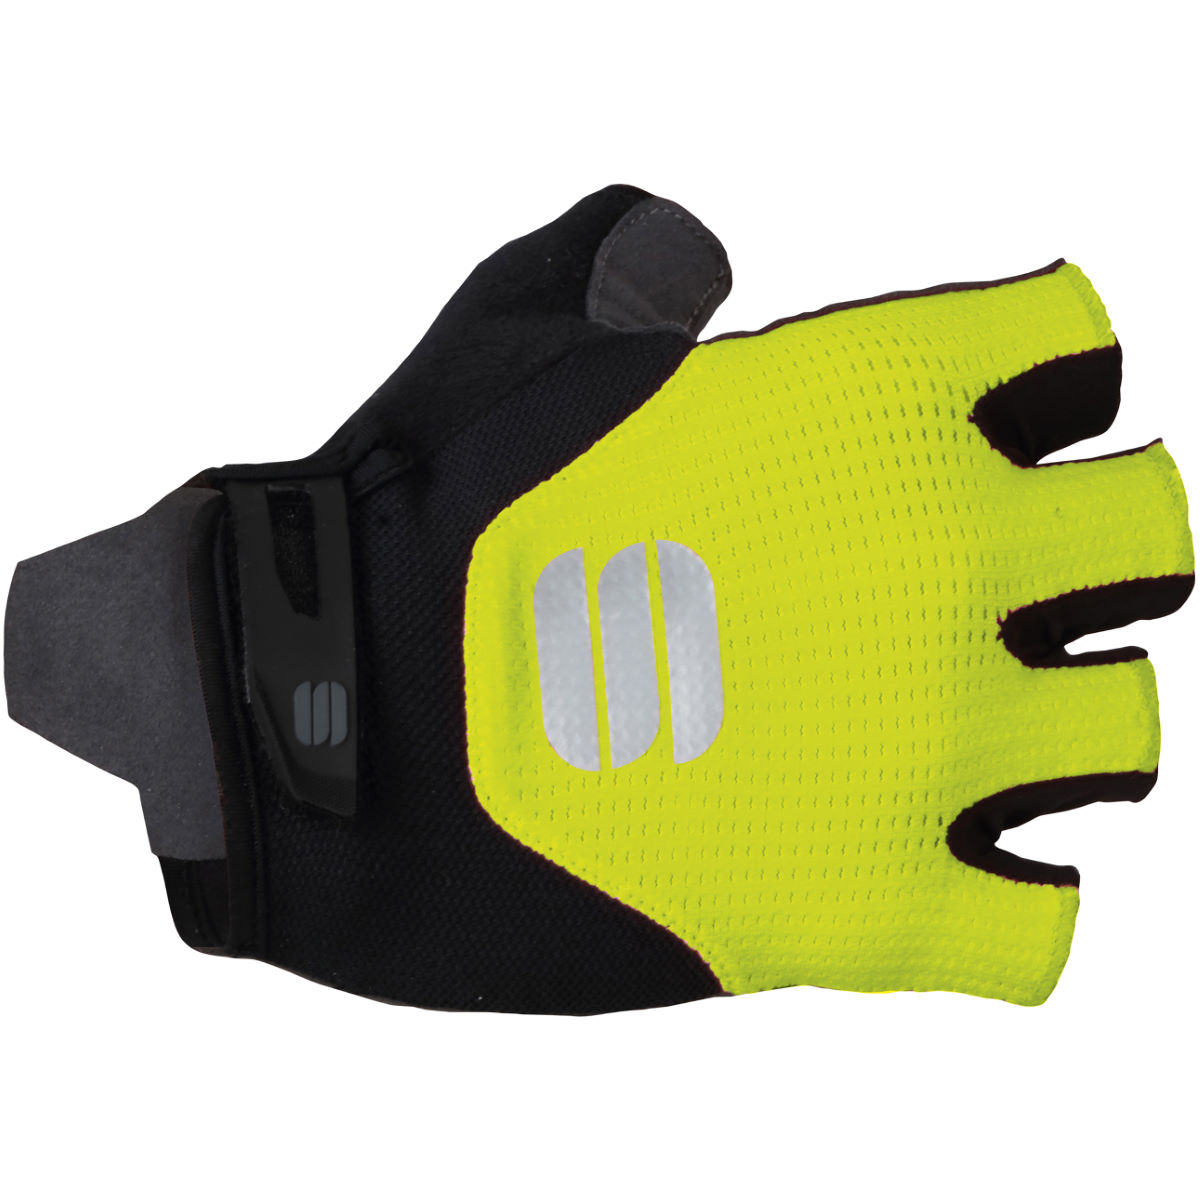 Sportful Neo Cycling Gloves - 2xl Black/yellow  Gloves